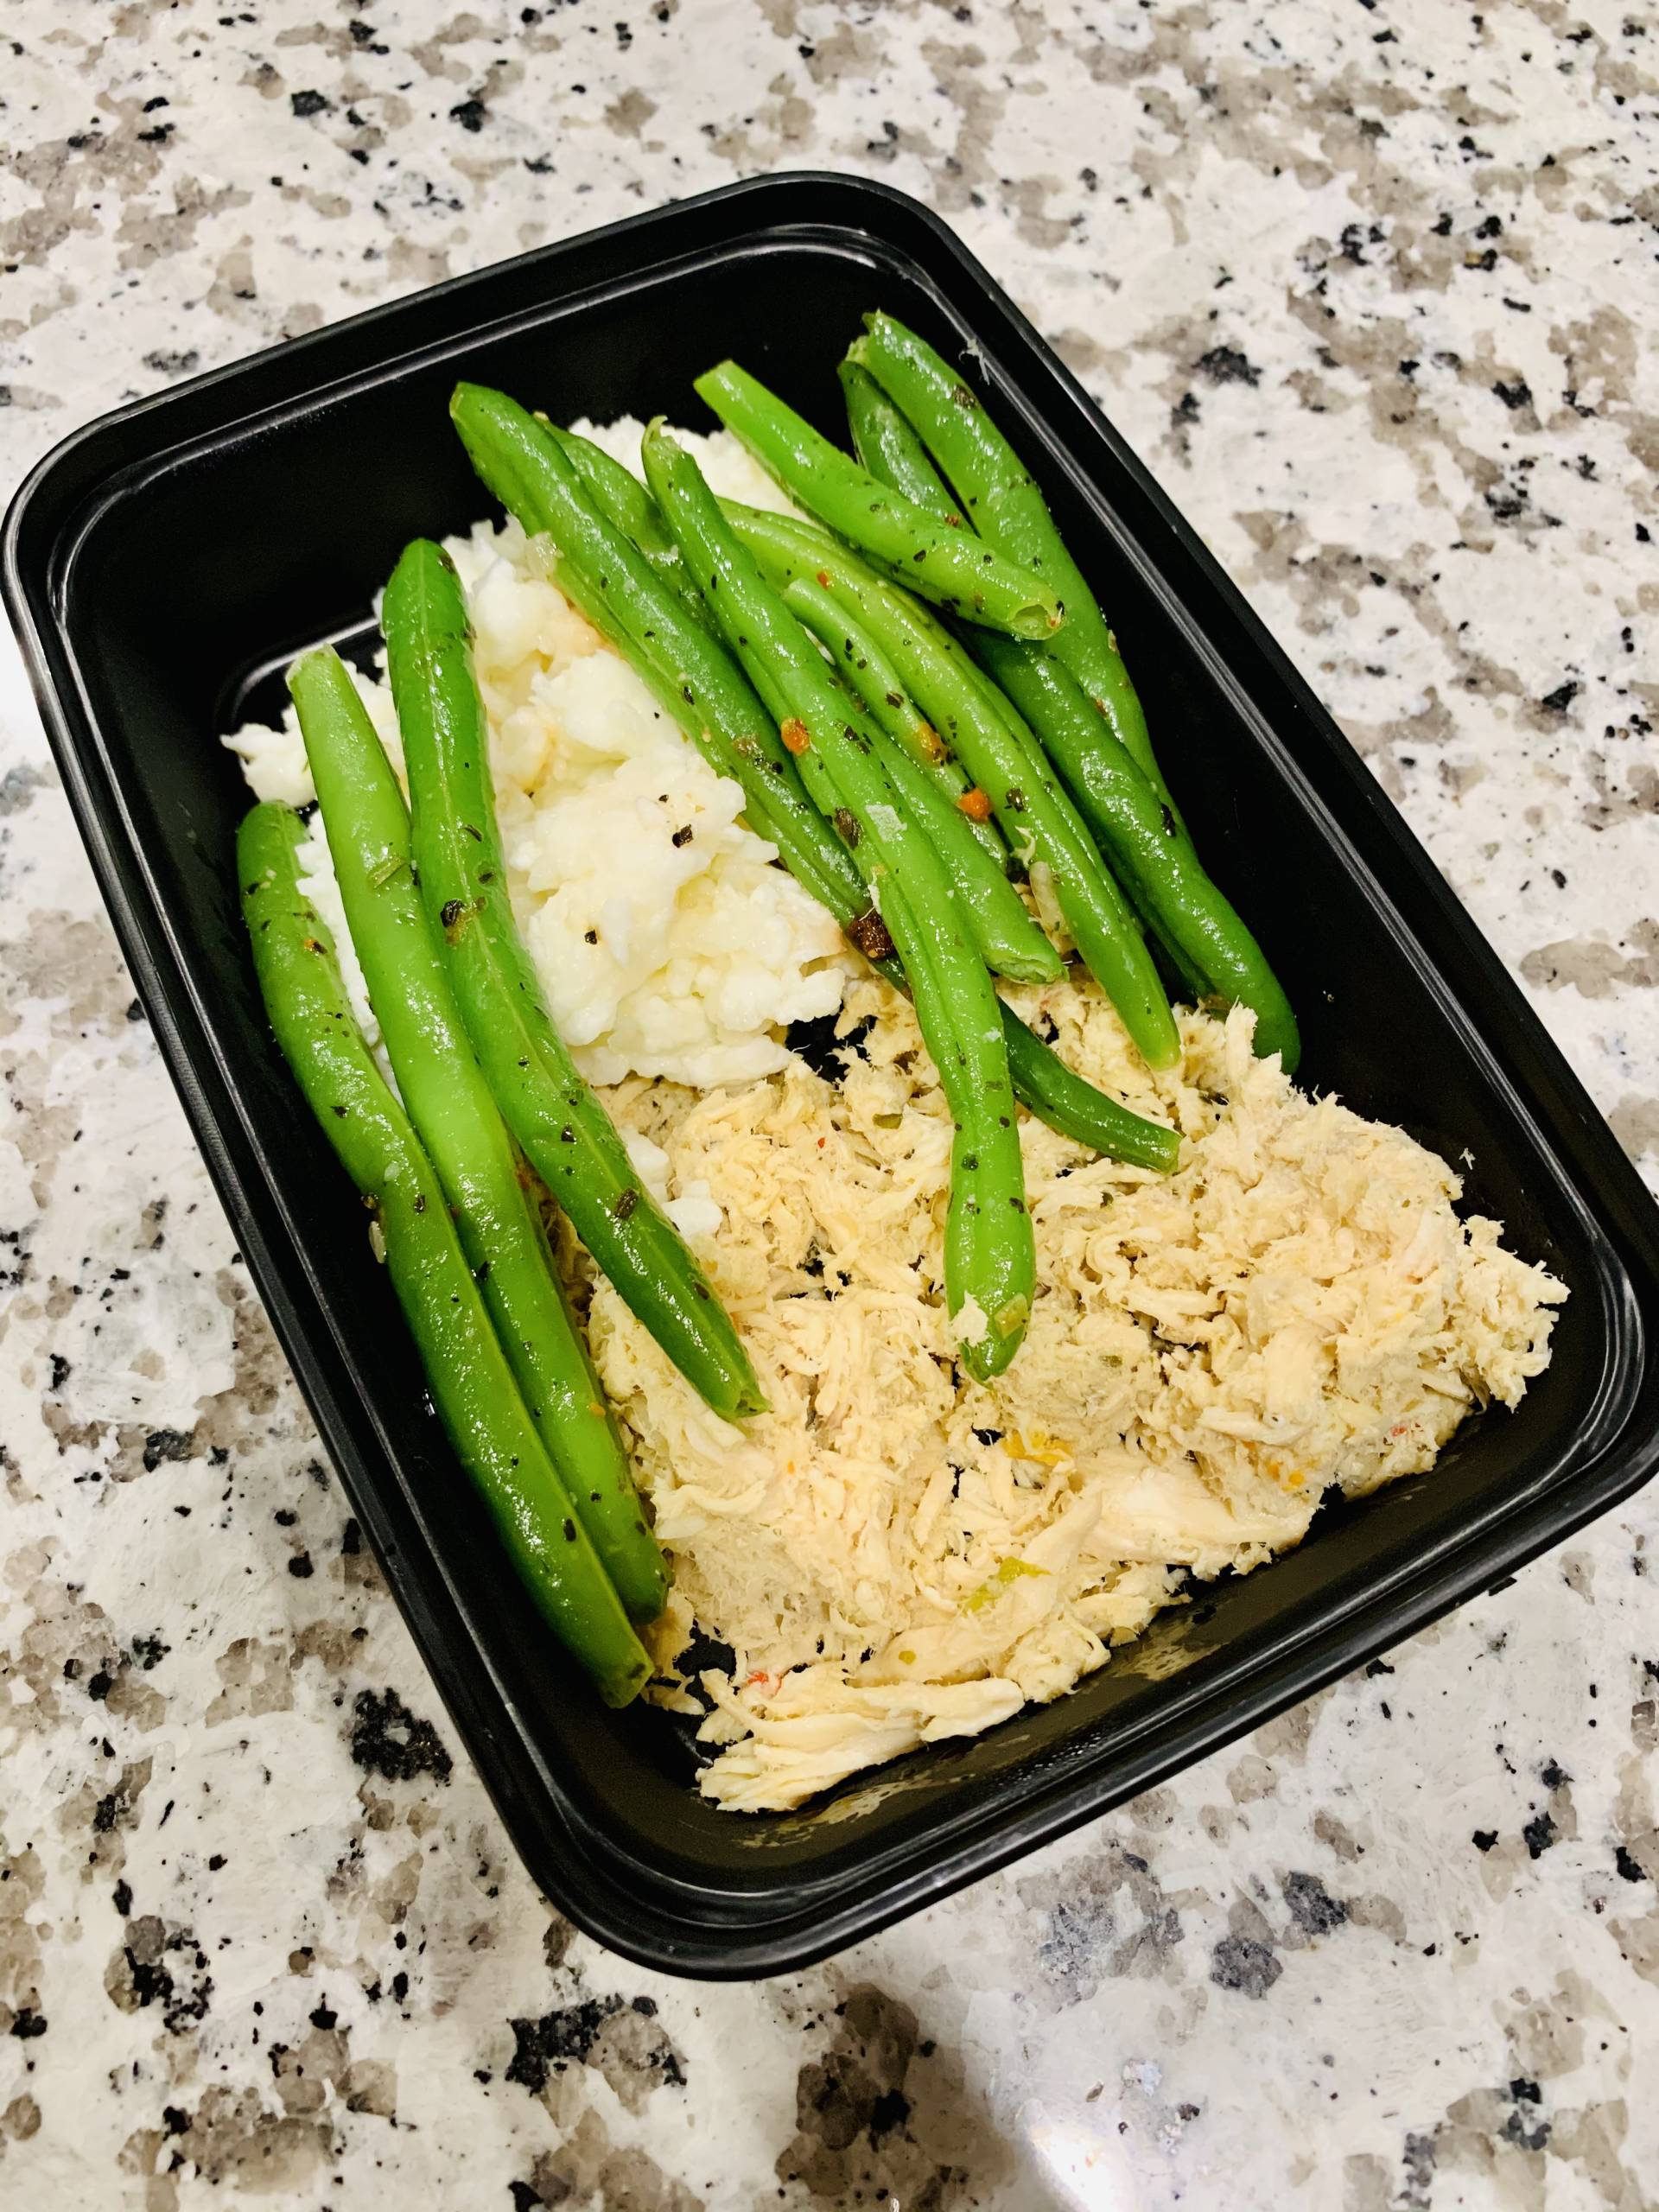 Scramble Egg Whites, Shredded Chicken and Green Beans